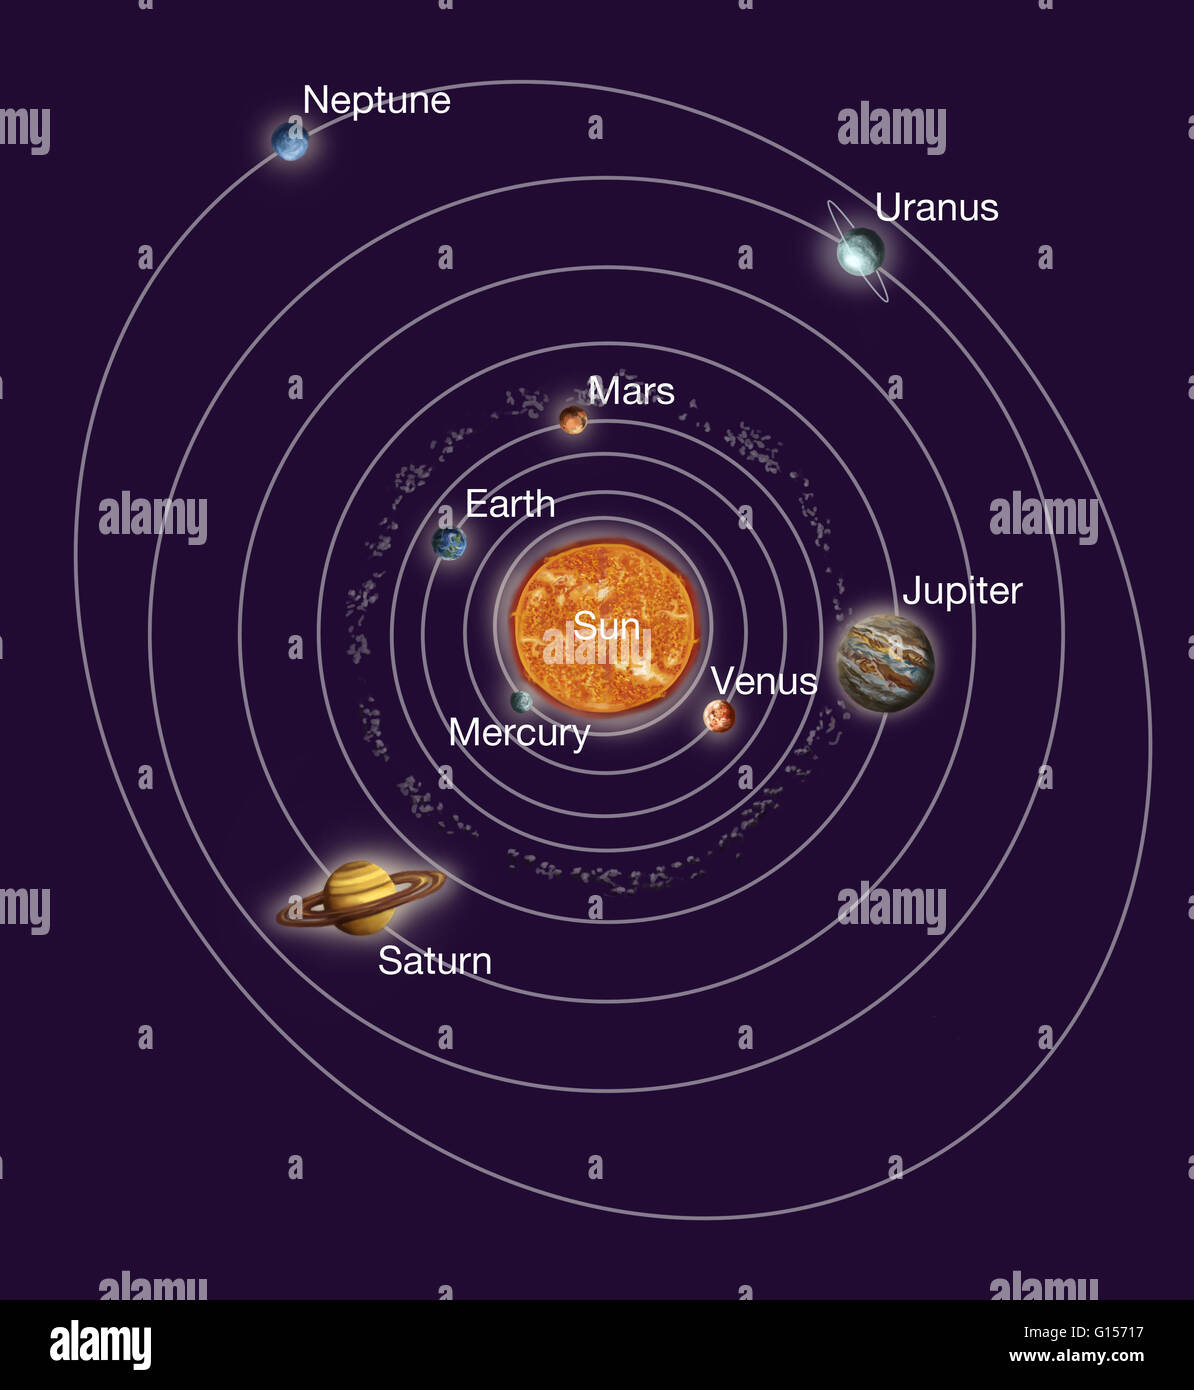 Solar System Orbits Stock Photos Amp Solar System Orbits Stock Images